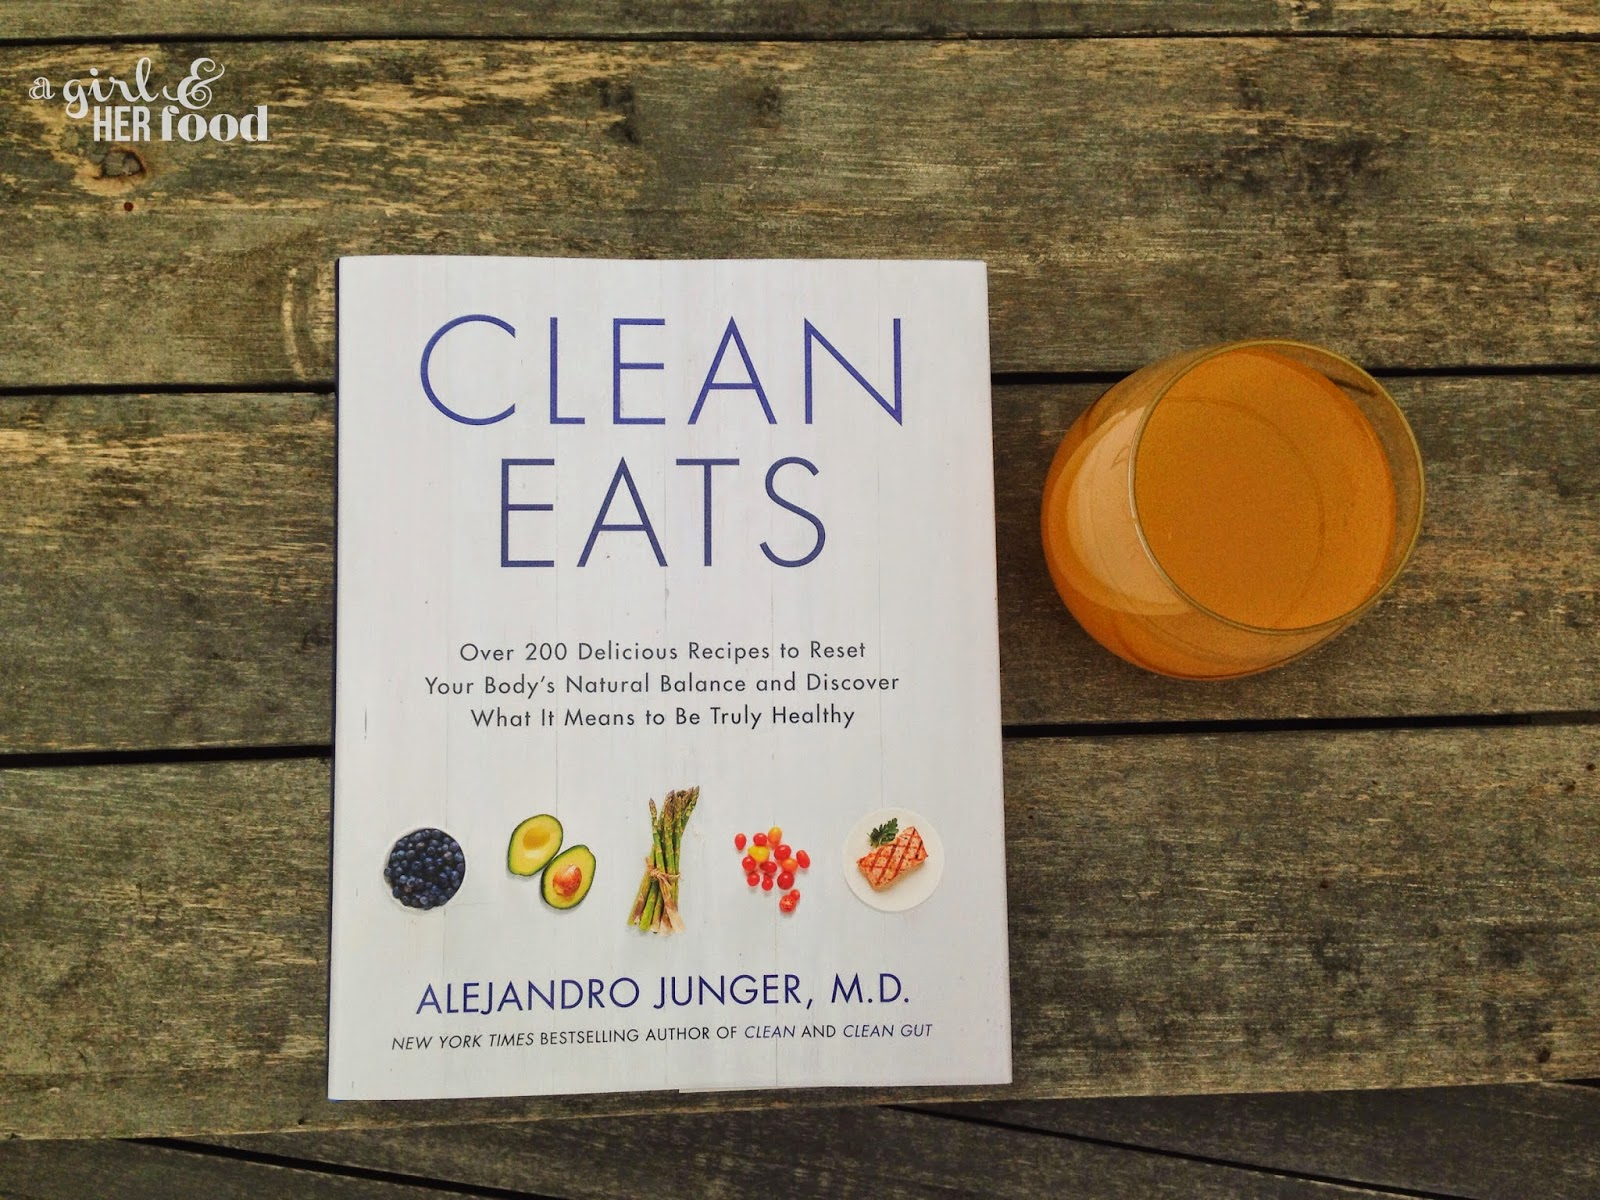 clean eats is here!